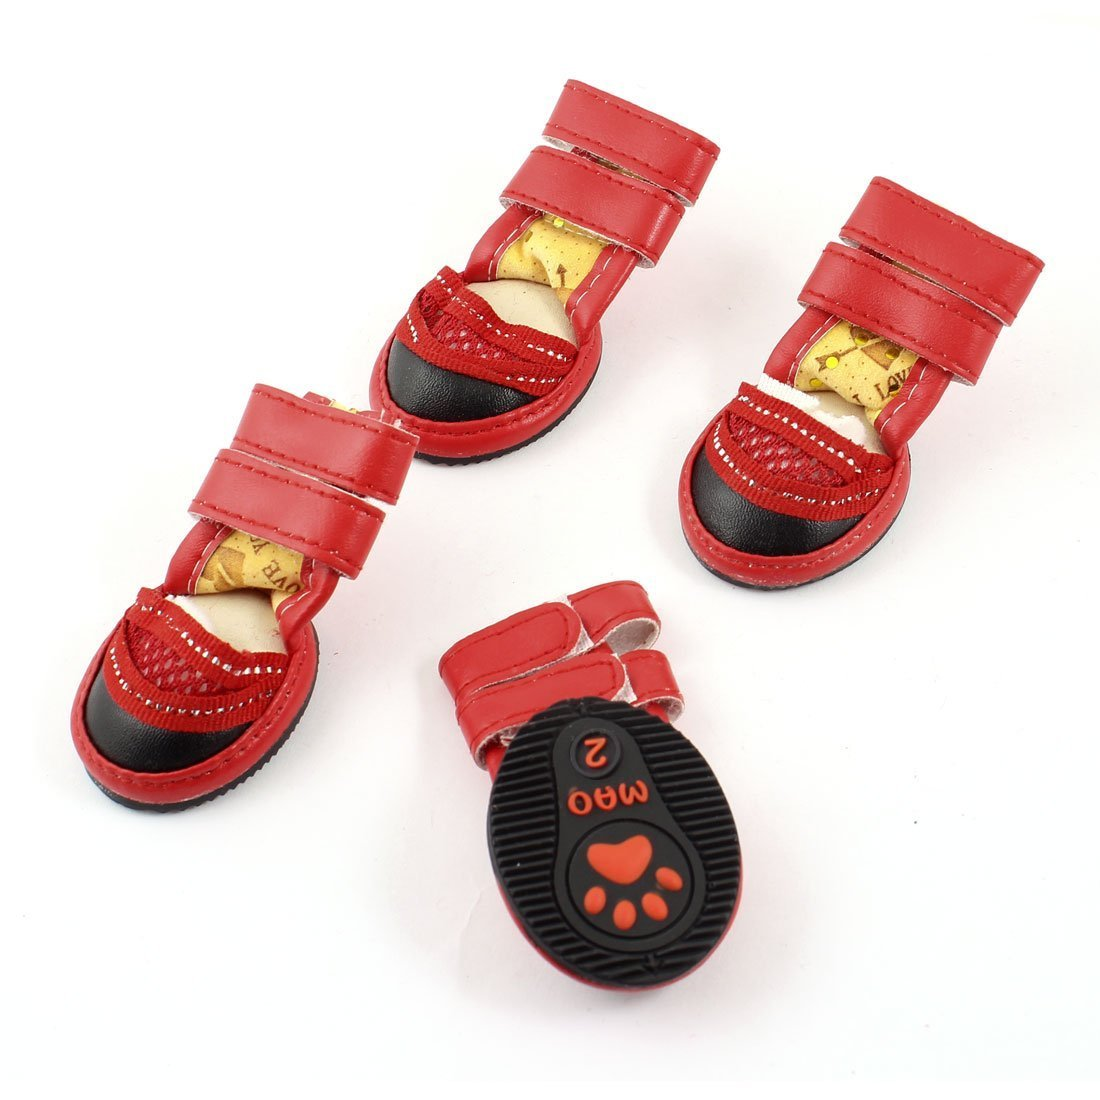 1Pc Pet Puppy Drawstring Closure Non Slip Sole shoes Booties S 2 Pairs Red